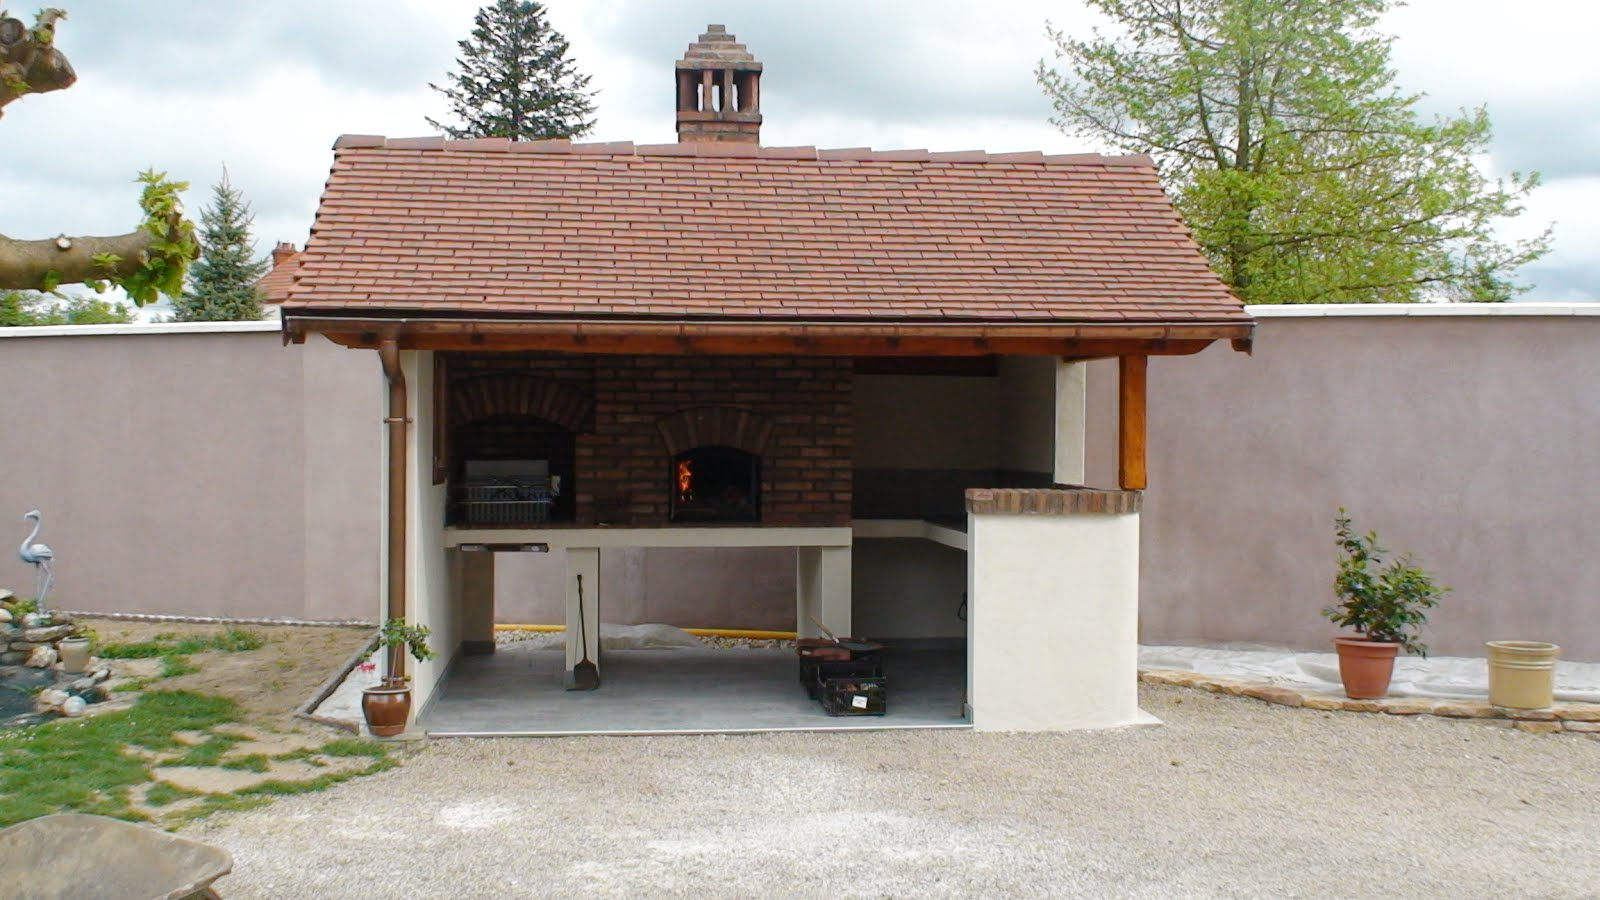 Carrelage exterieur pour barbecue 28 images carrelage for Barbecue exterieur